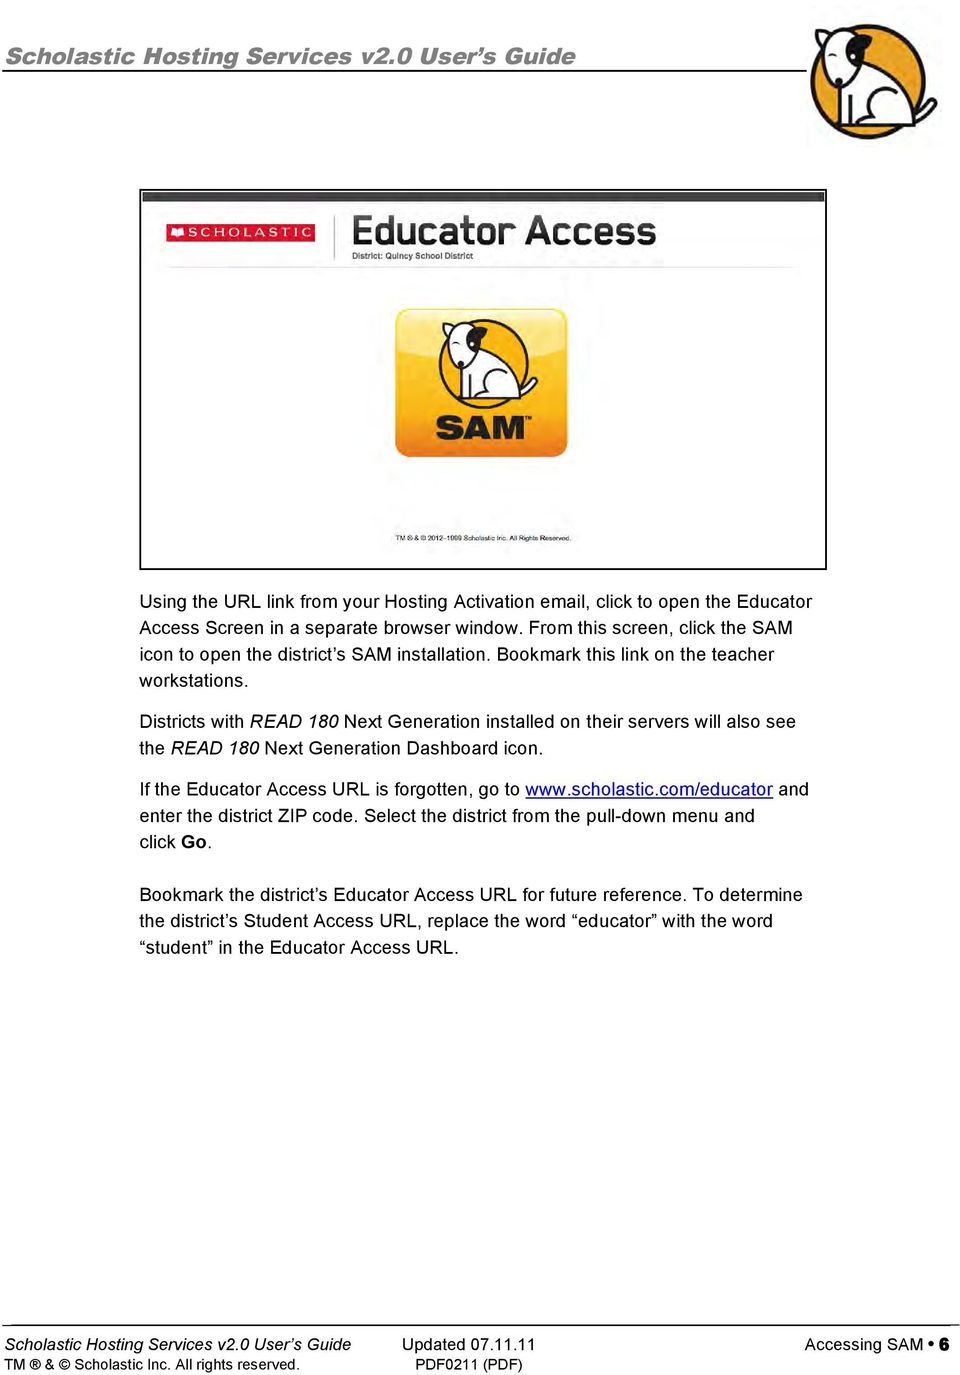 Districts with READ 180 Next Generation installed on their servers will also see the READ 180 Next Generation Dashboard icon. If the Educator Access URL is forgotten, go to www.scholastic.